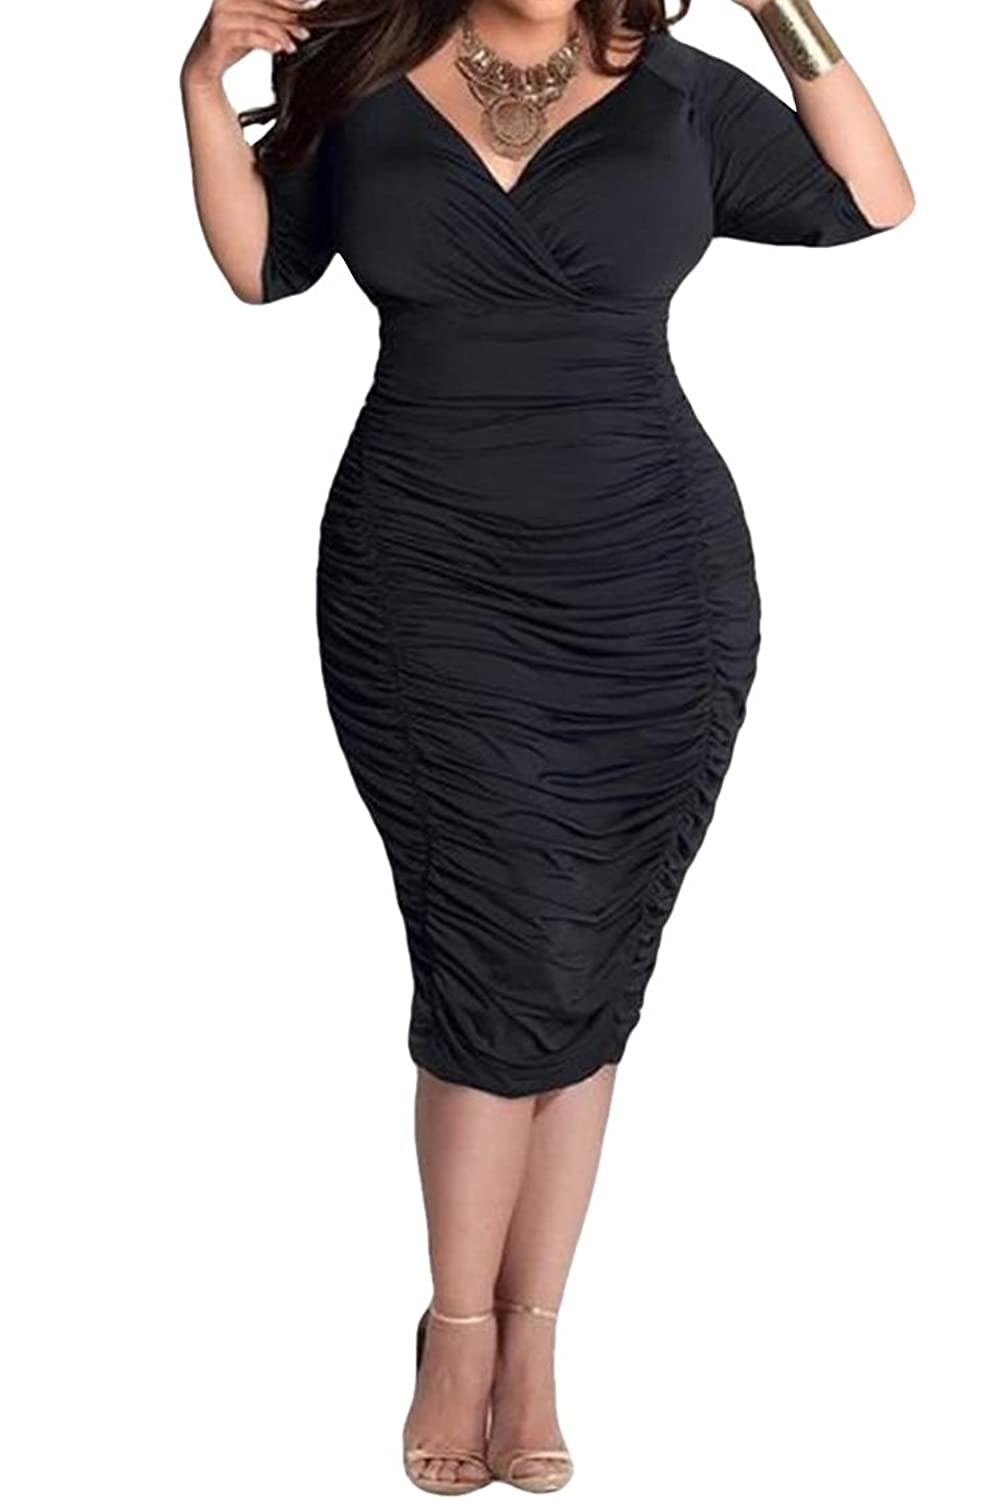 LaSuiveur Womens V Neck Low Bust Cascading Ruffle Slim Fit Plus Size Dress